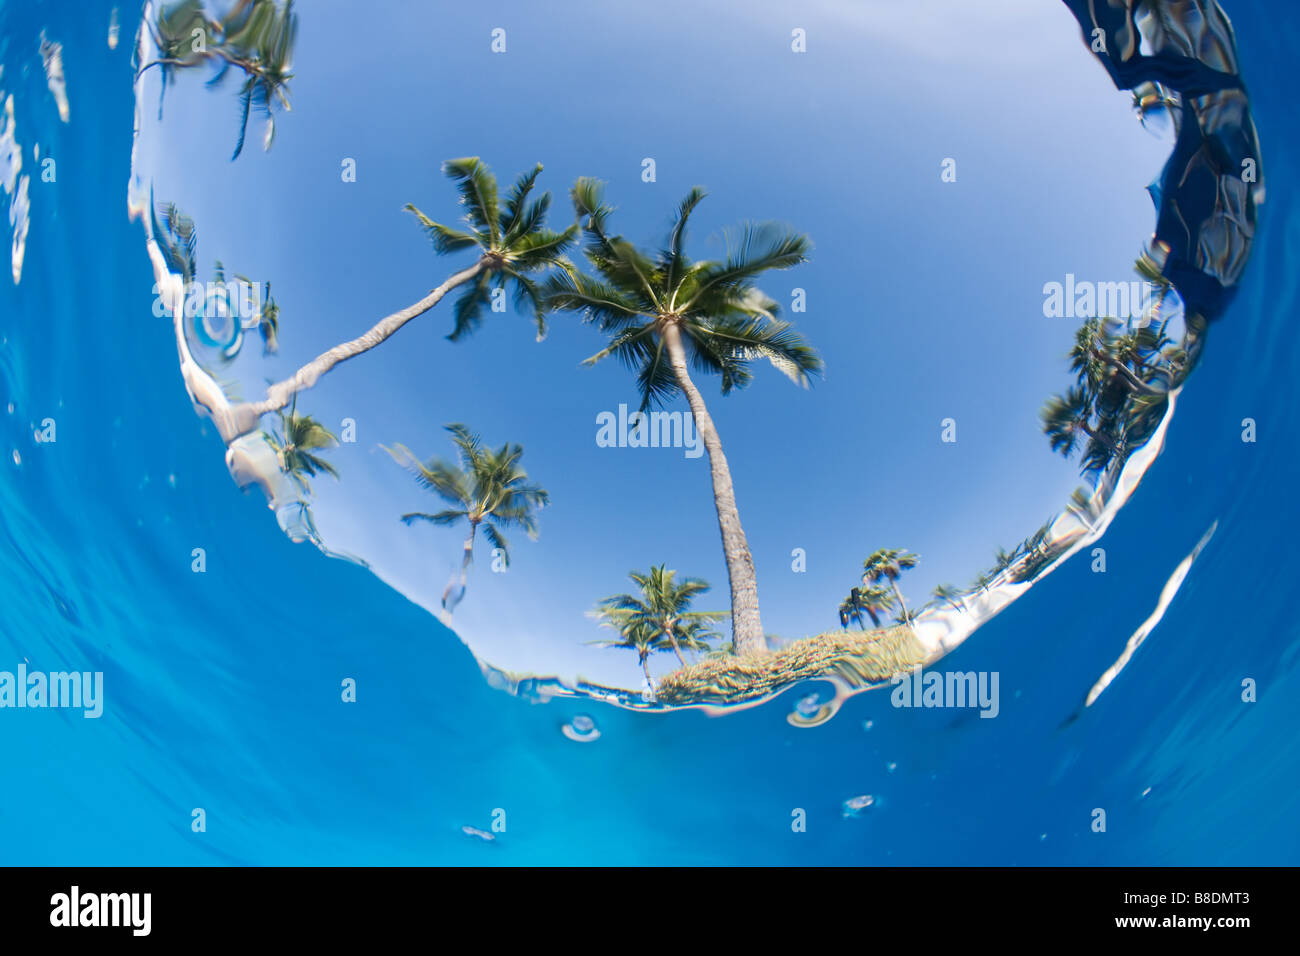 View from under the sea - Stock Image